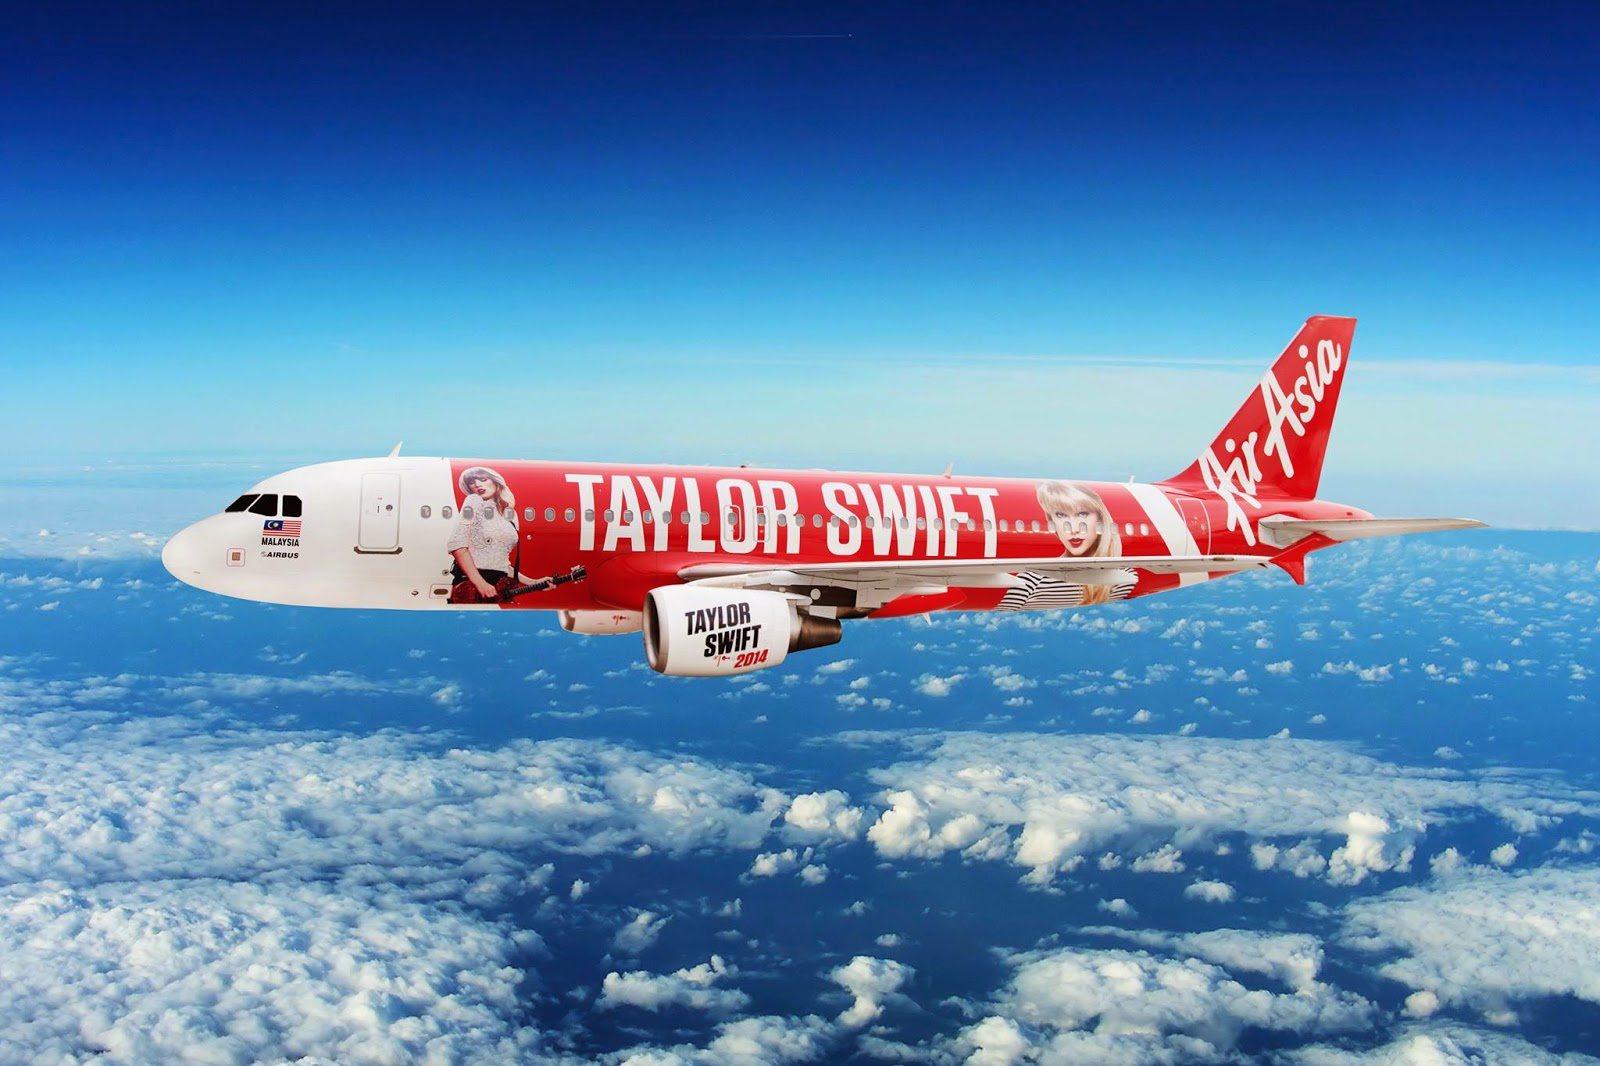 Sugoi Days Taylor Swift Airasia Merchandise For The Fans